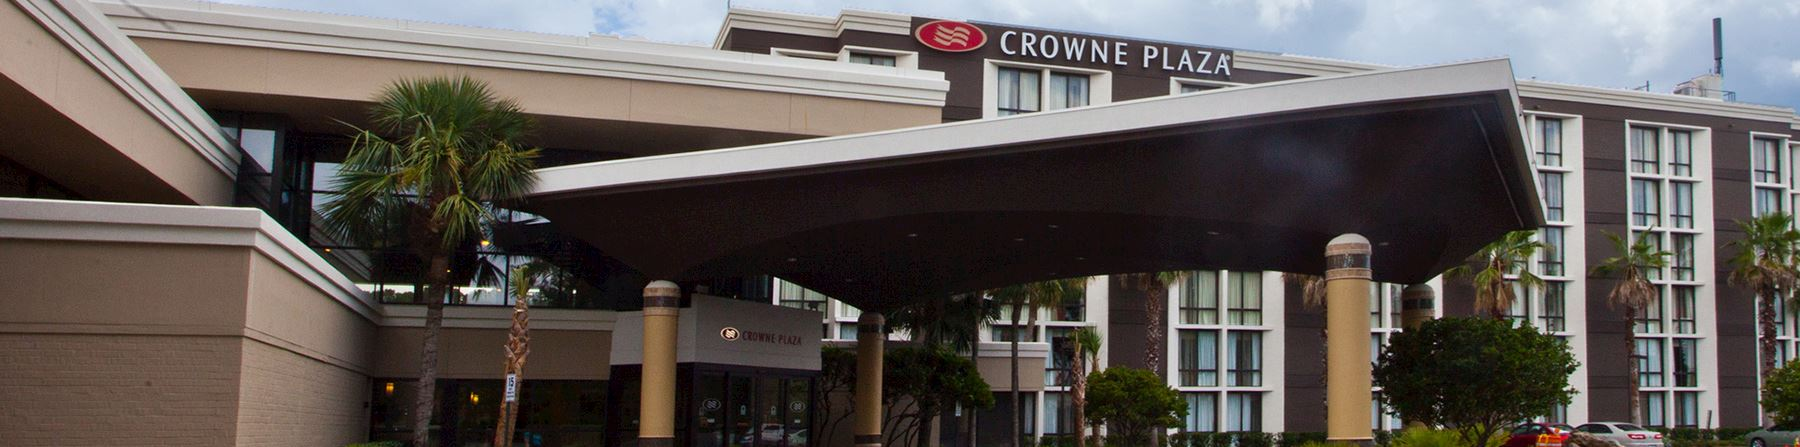 Sitemap of Crowne Plaza Jacksonville Airport Hotel